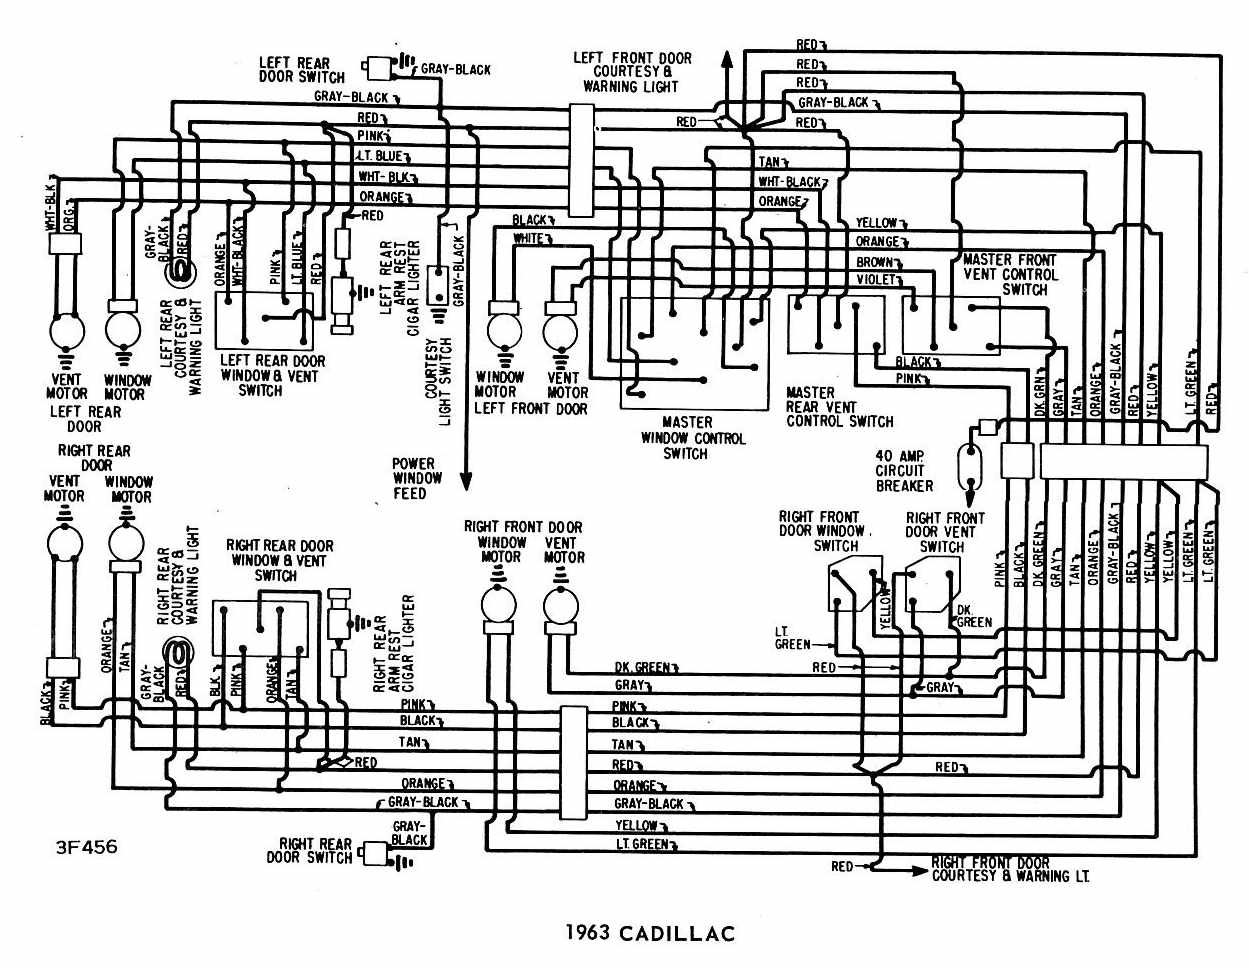 1966 Falcon Wiring Diagram Library Ranchero Cadillac 1963 Windows